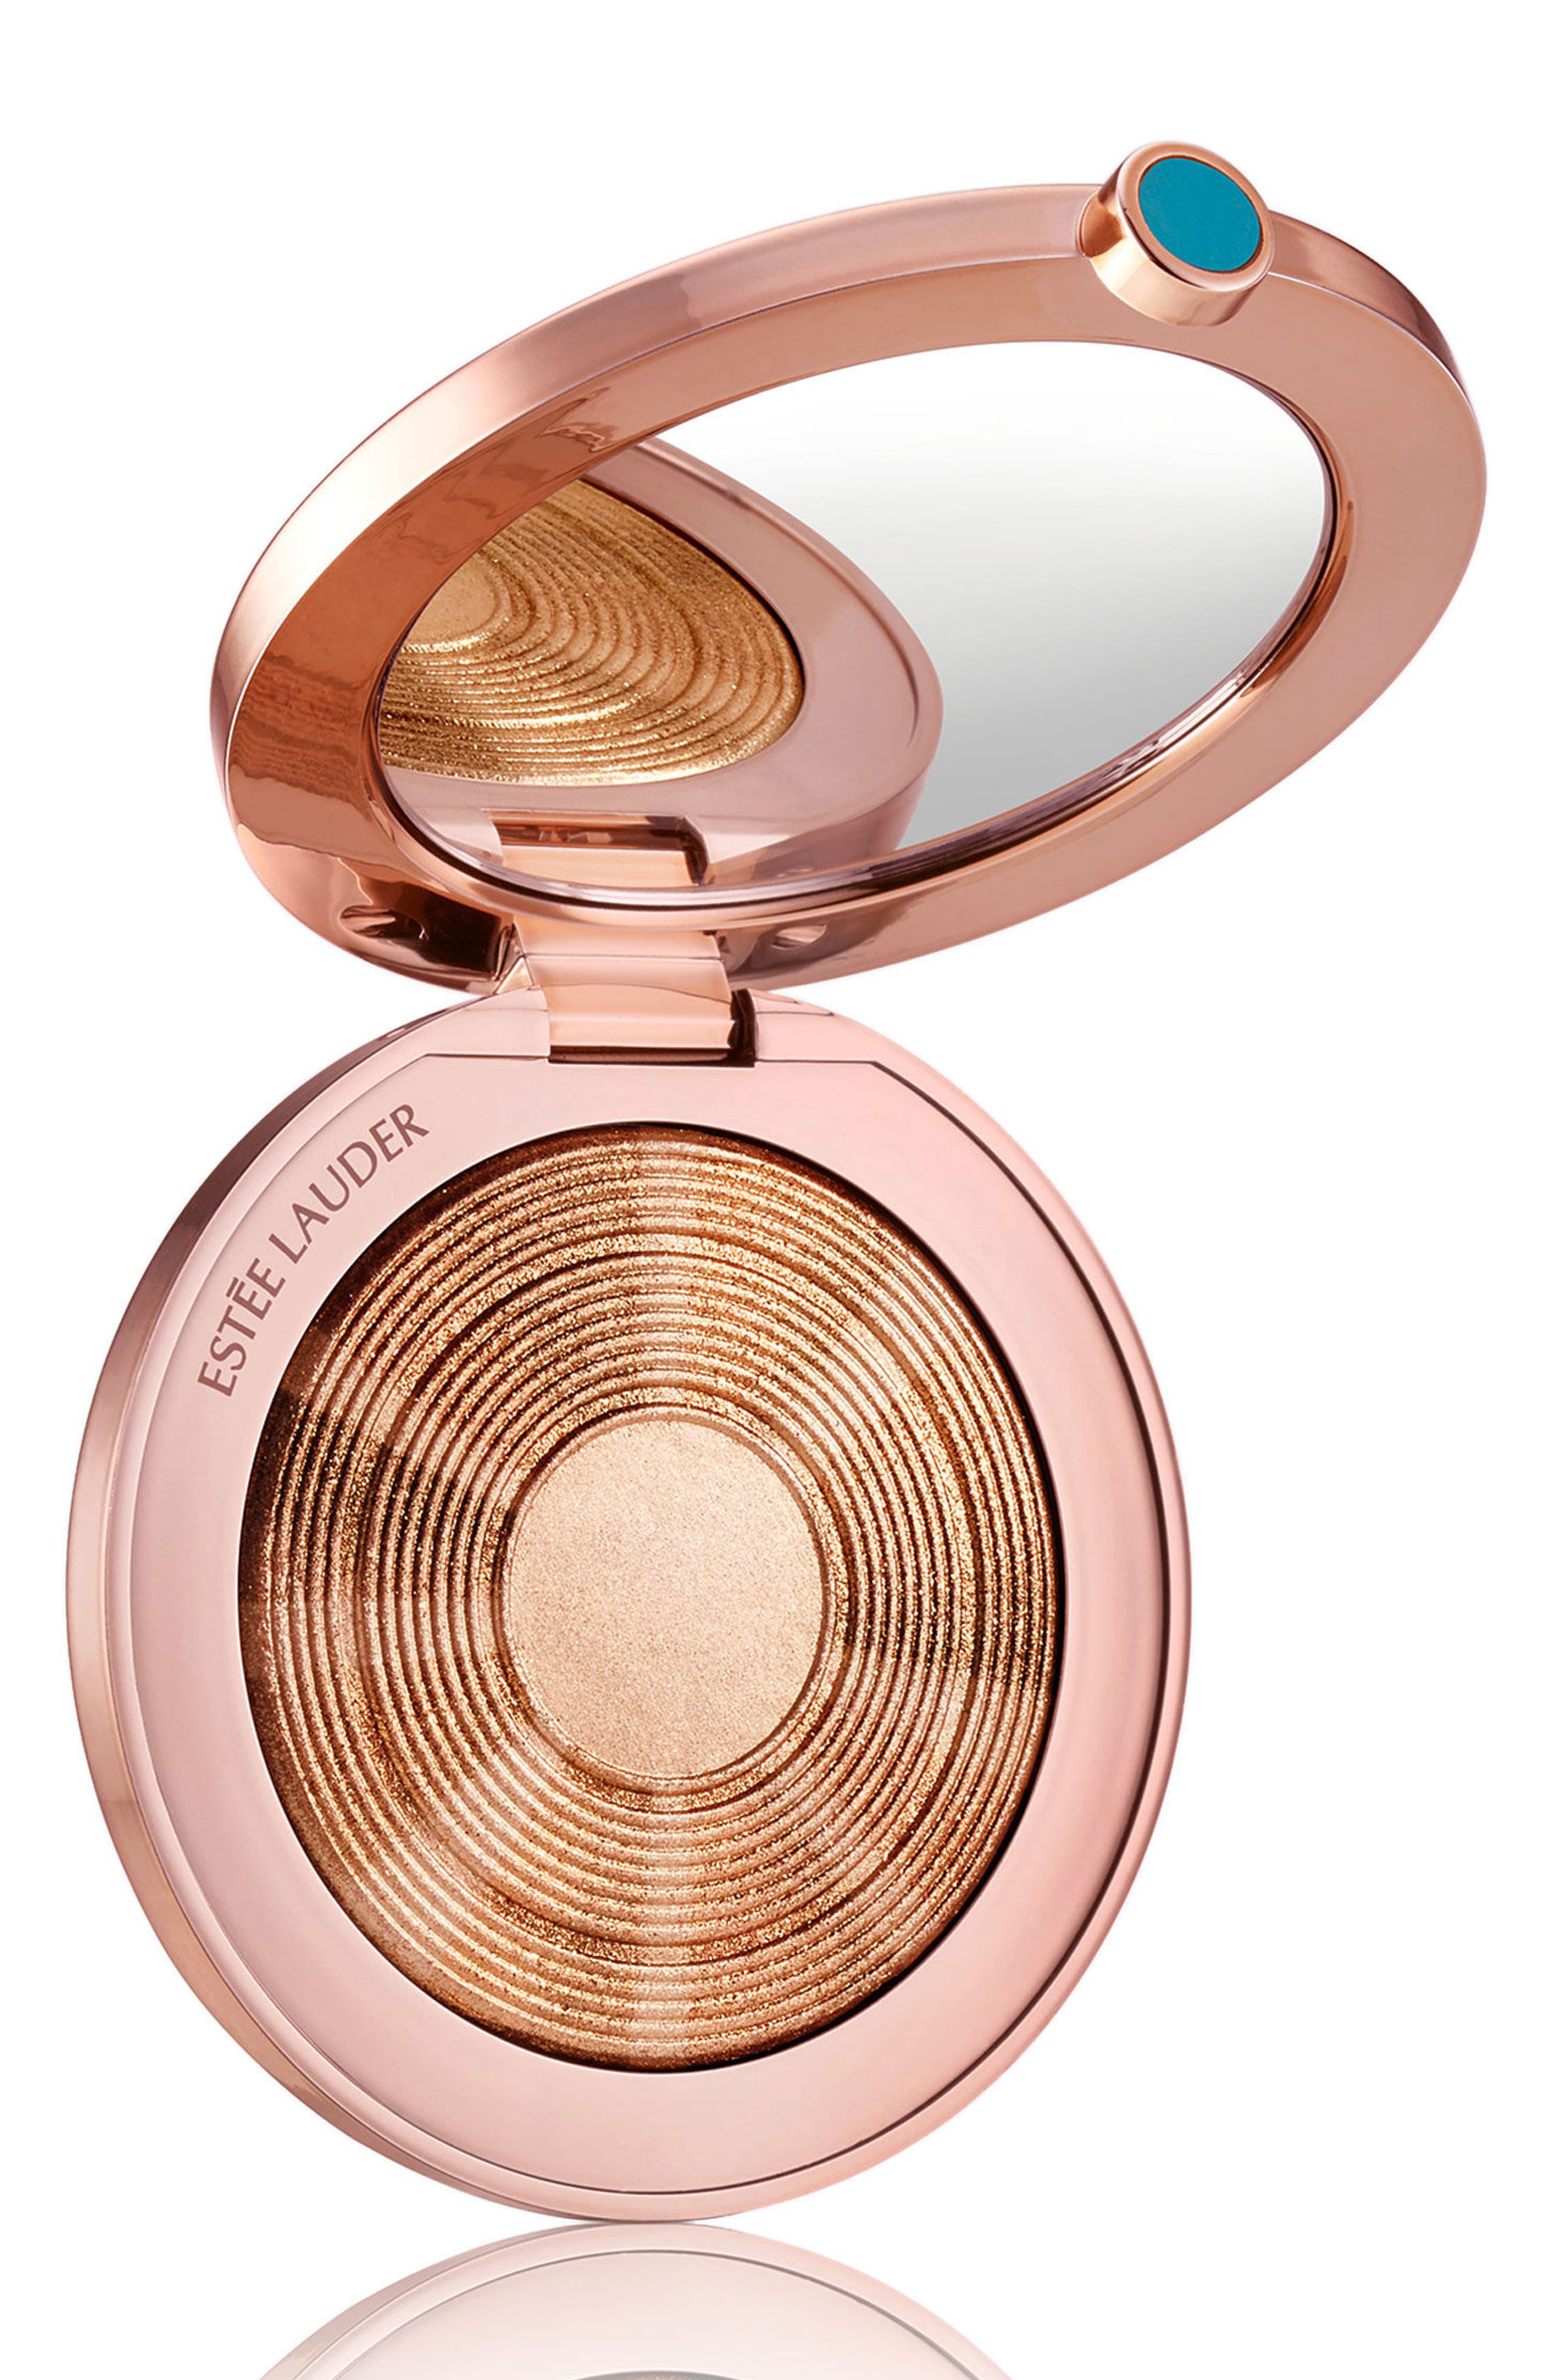 Bronze Goddess Illuminating Powder Gelée,                         Main,                         color,